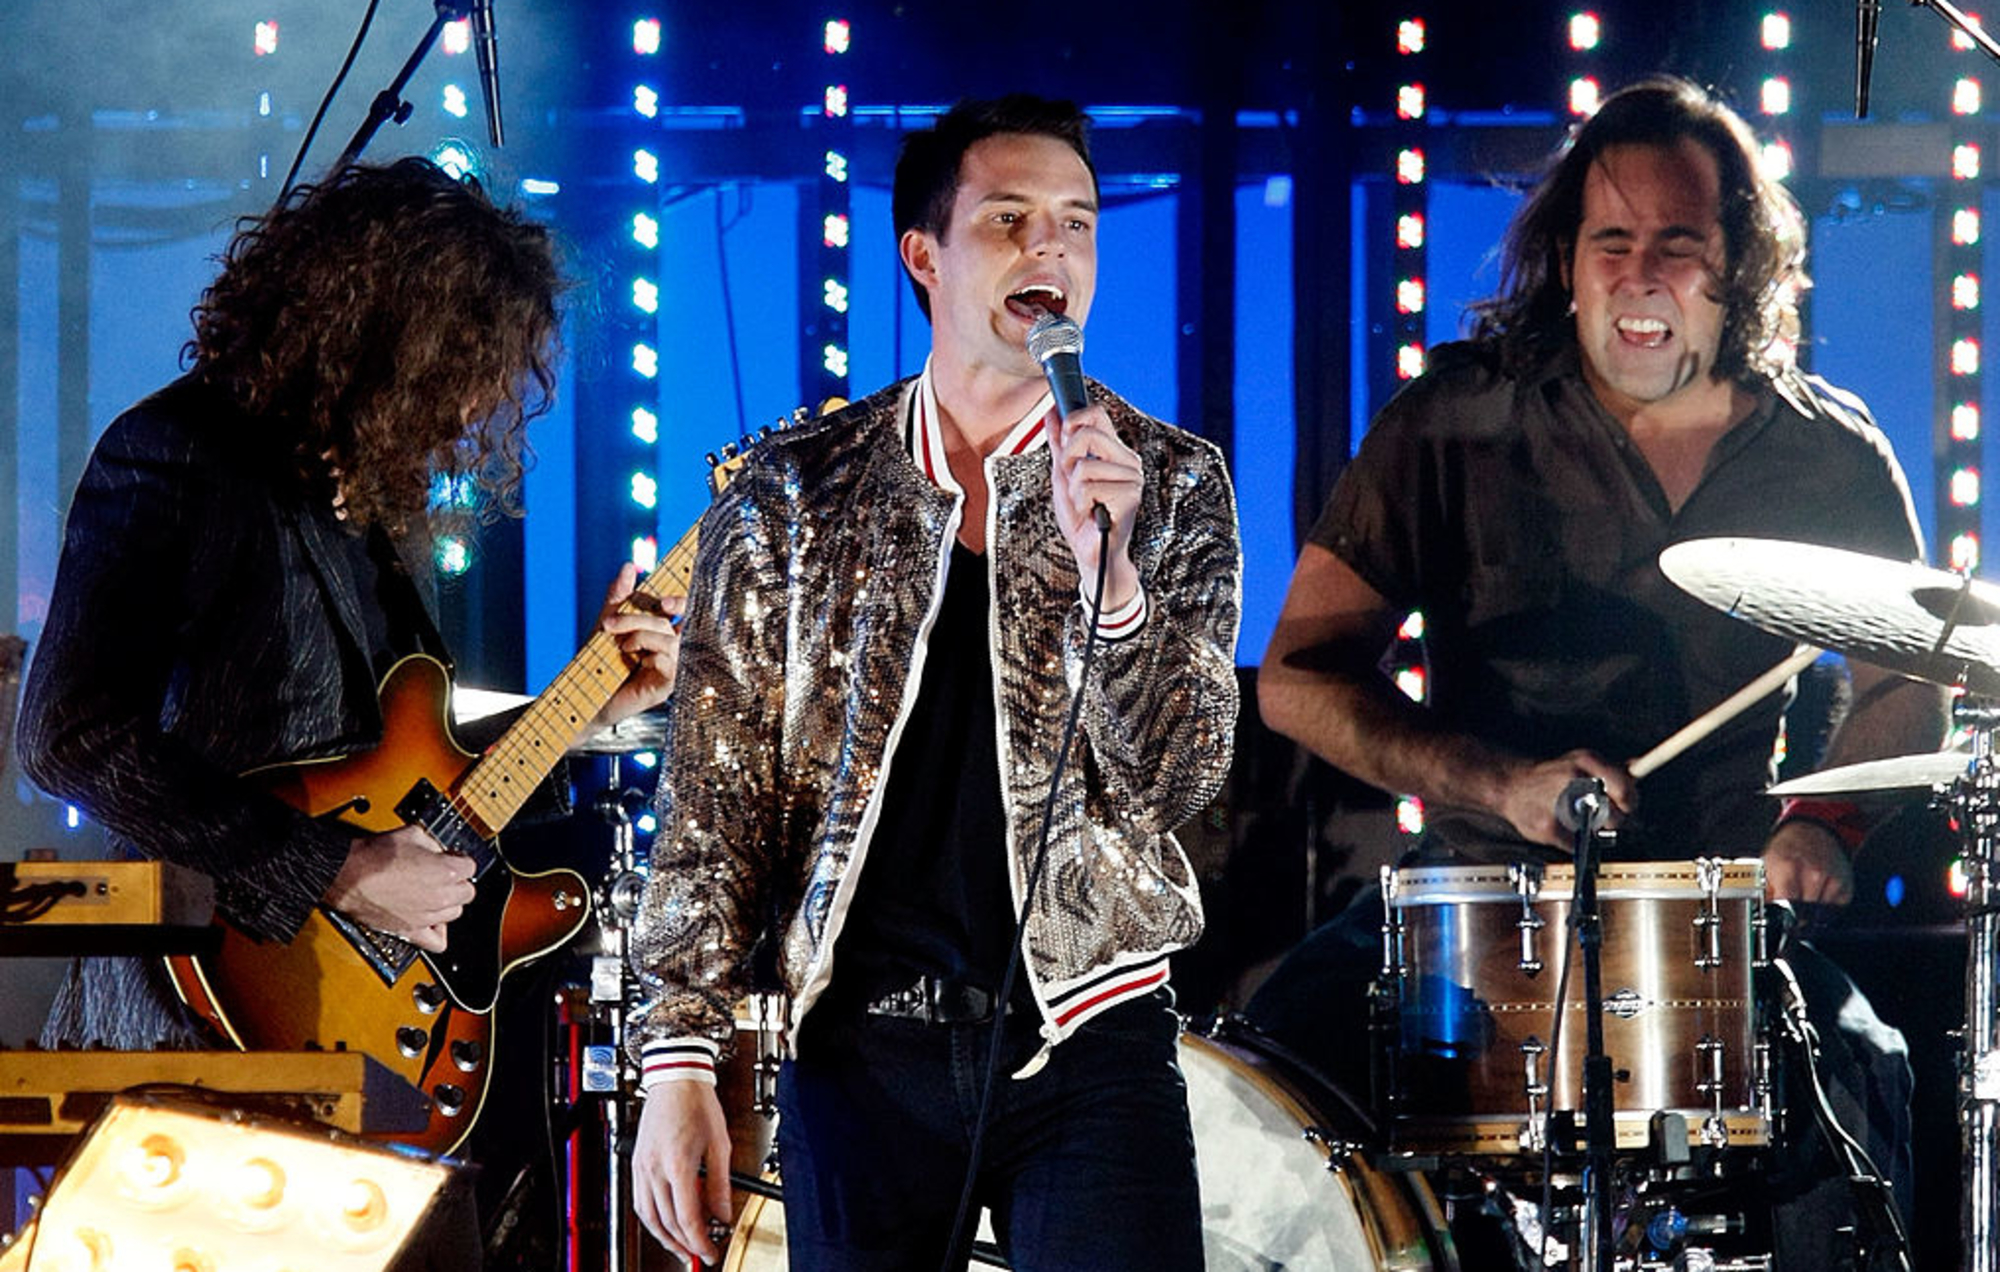 The Killers unveil cinematic video for anthemic new single 'Caution' - EpicNews